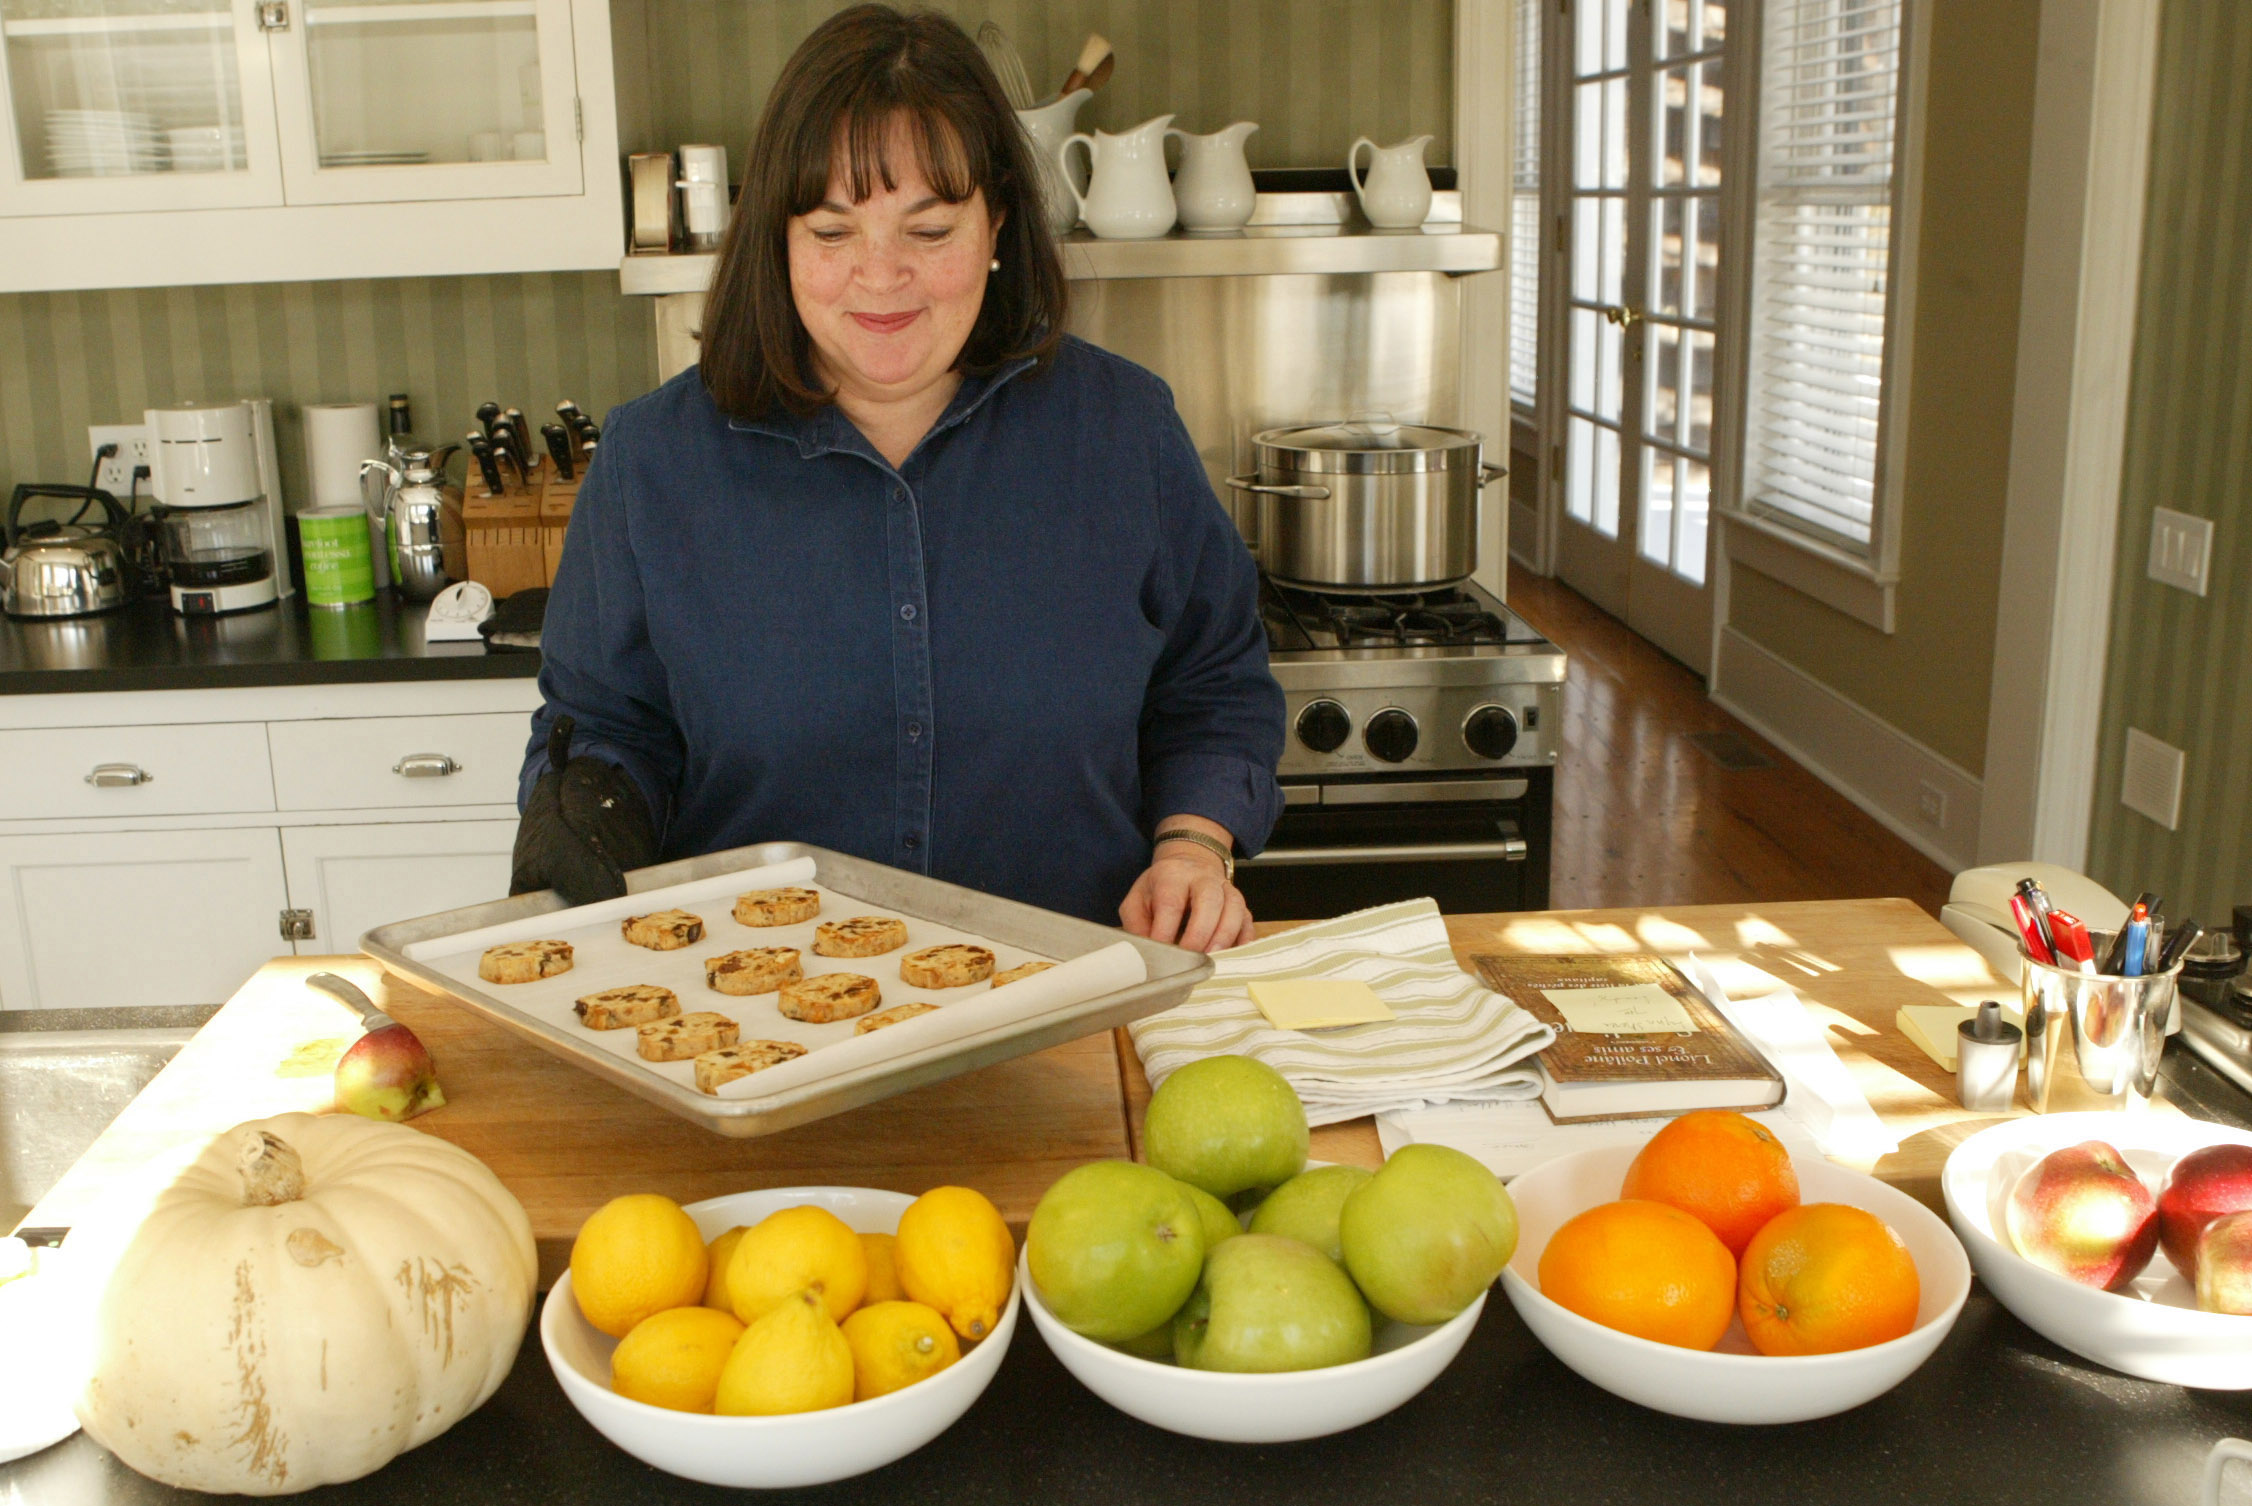 Barefoot Contessa goes \'Back to Basics\' | The Spokesman-Review